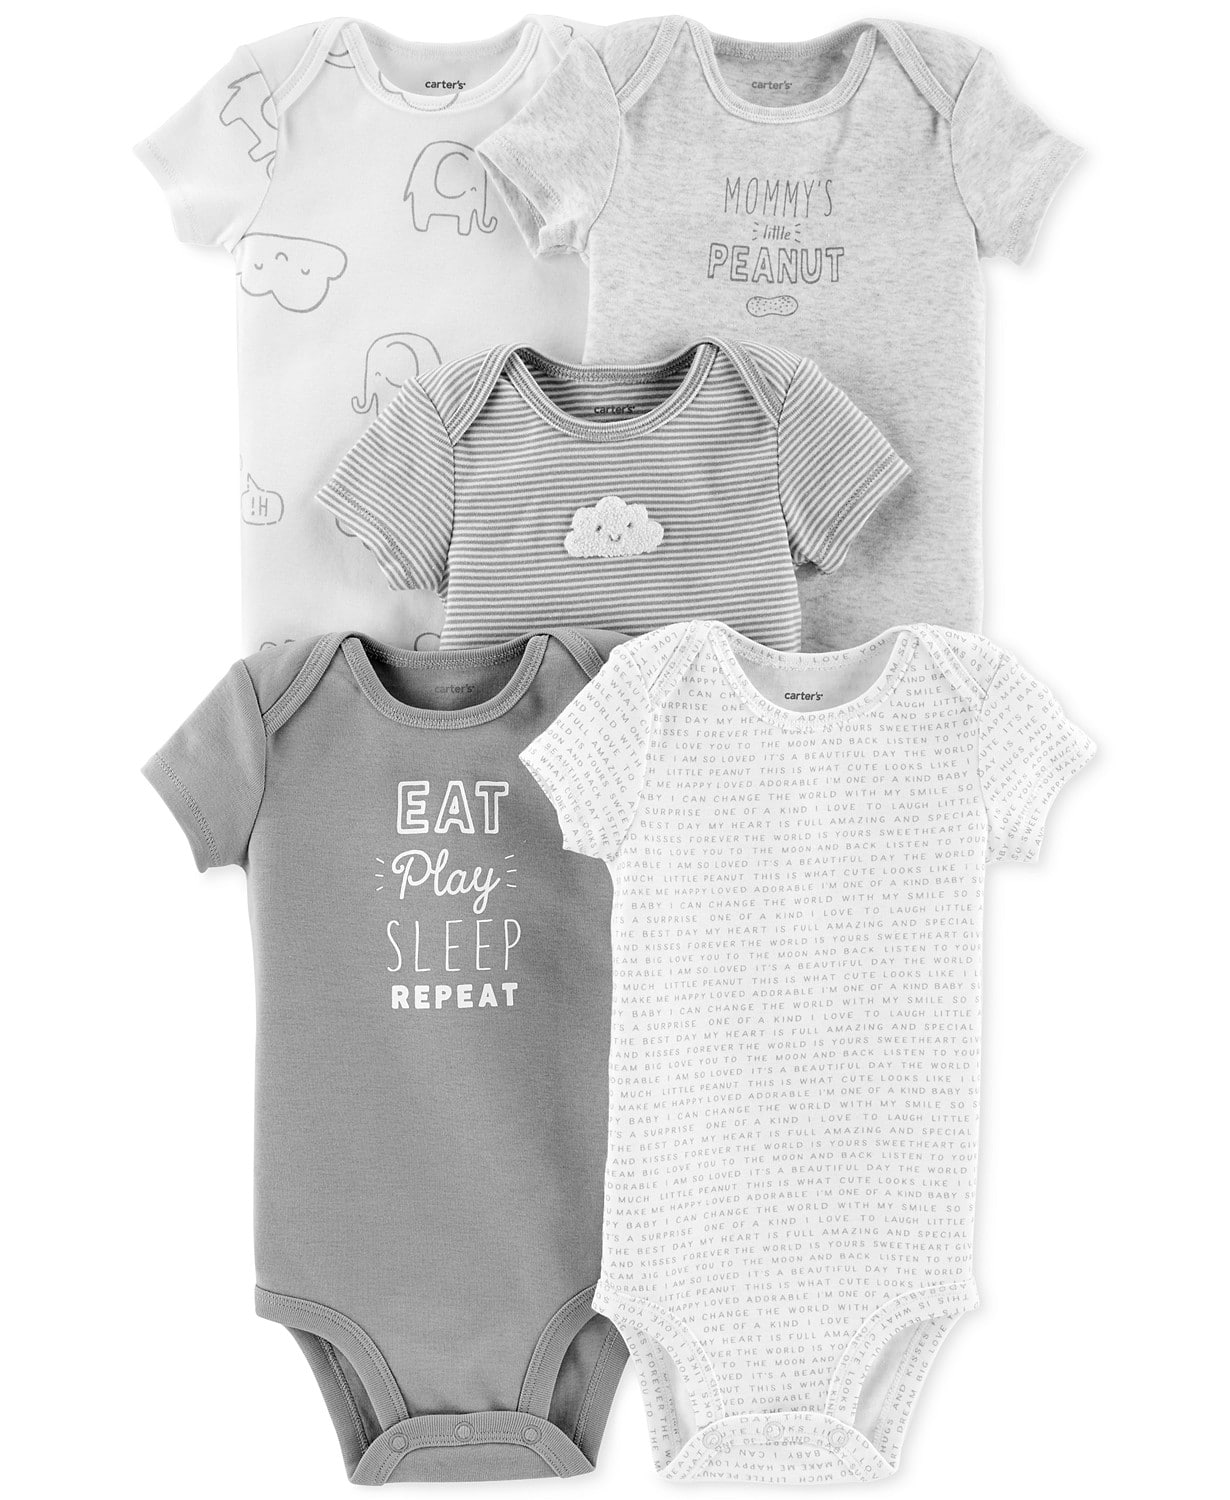 5999ae3ff 5-Pack Carter's Baby Boys/Girls Printed Cotton Bodysuits (various ...